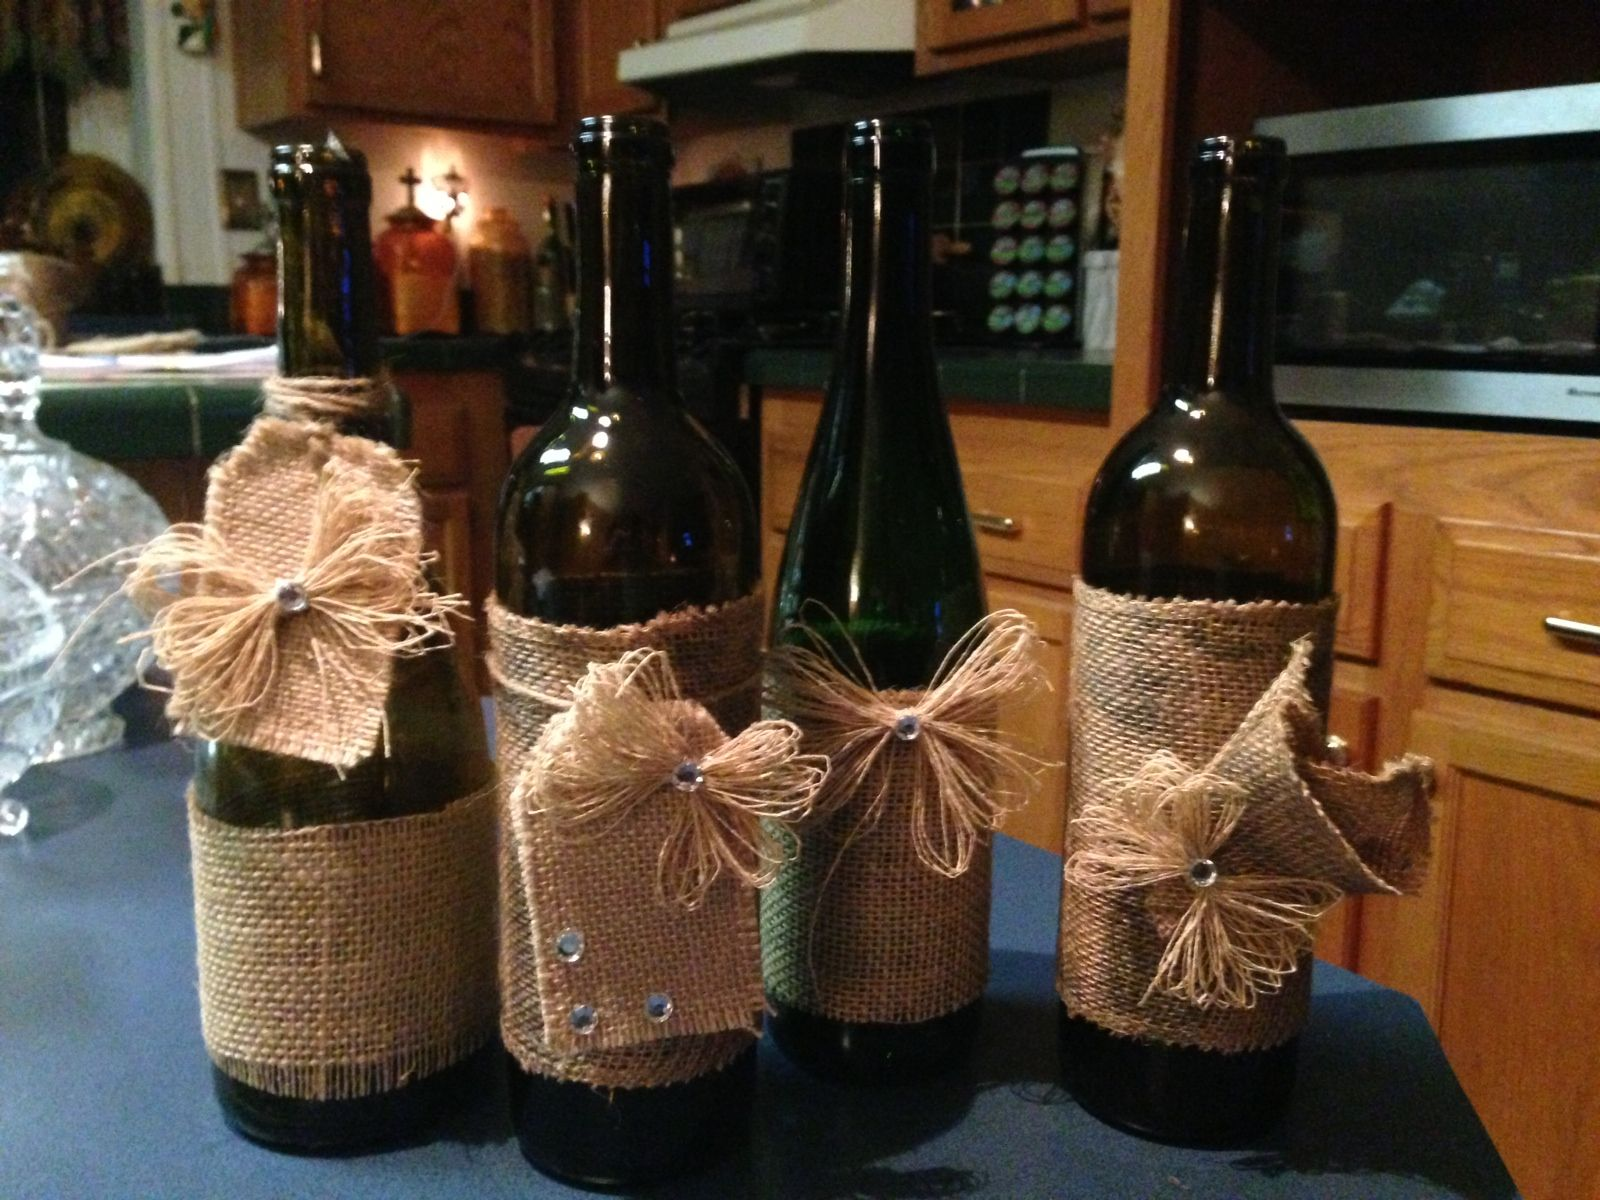 What to do with empty wine bottles - Empty Wine Bottles Altered Bottles Tea Ideas Holiday Ideas Holiday Decor Fun Crafts Diy Gifts Wine Cellar Craft Ideas